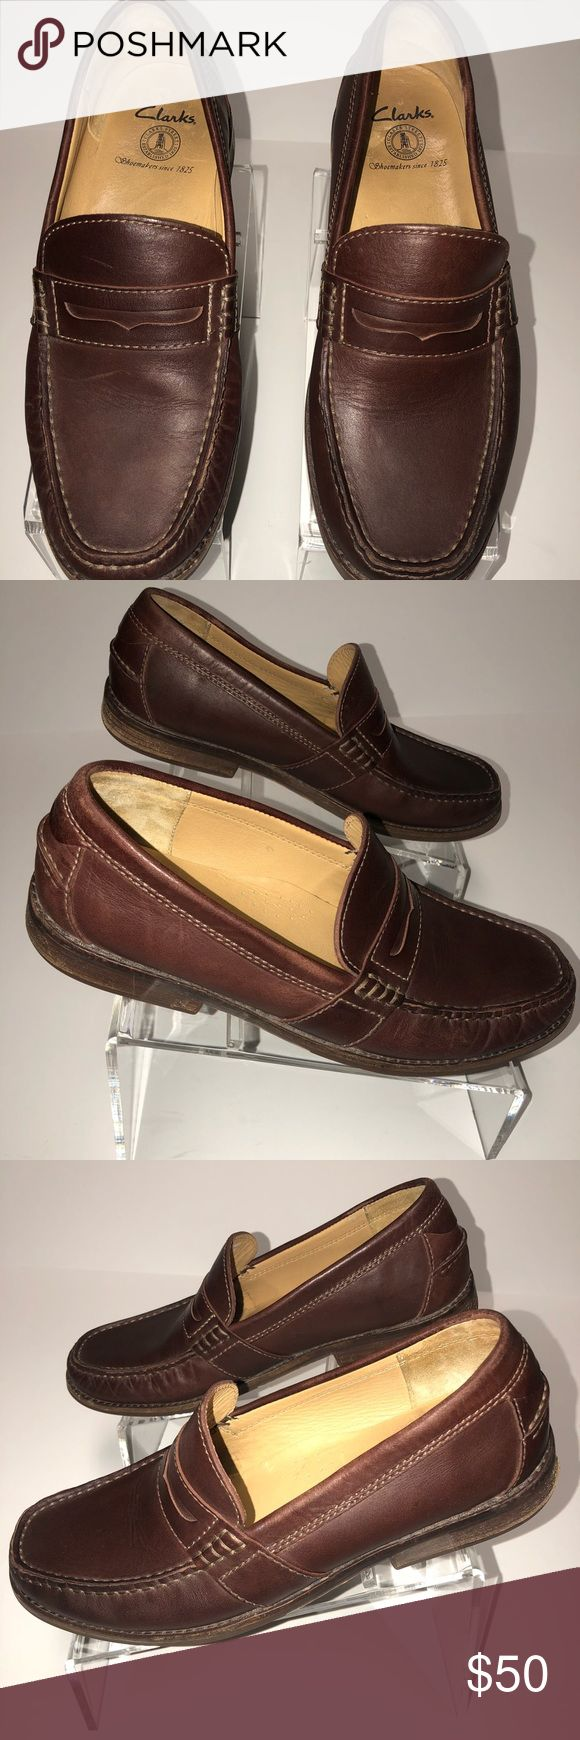 Clarks Men's Brown Loafers Size 10.5M Clarks Men's Brown Leather Loafers.  Size 10.5 M.  Excellent pre-owned condition.  They look brand new.  No flaws. Clarks Shoes Loafers & Slip-Ons